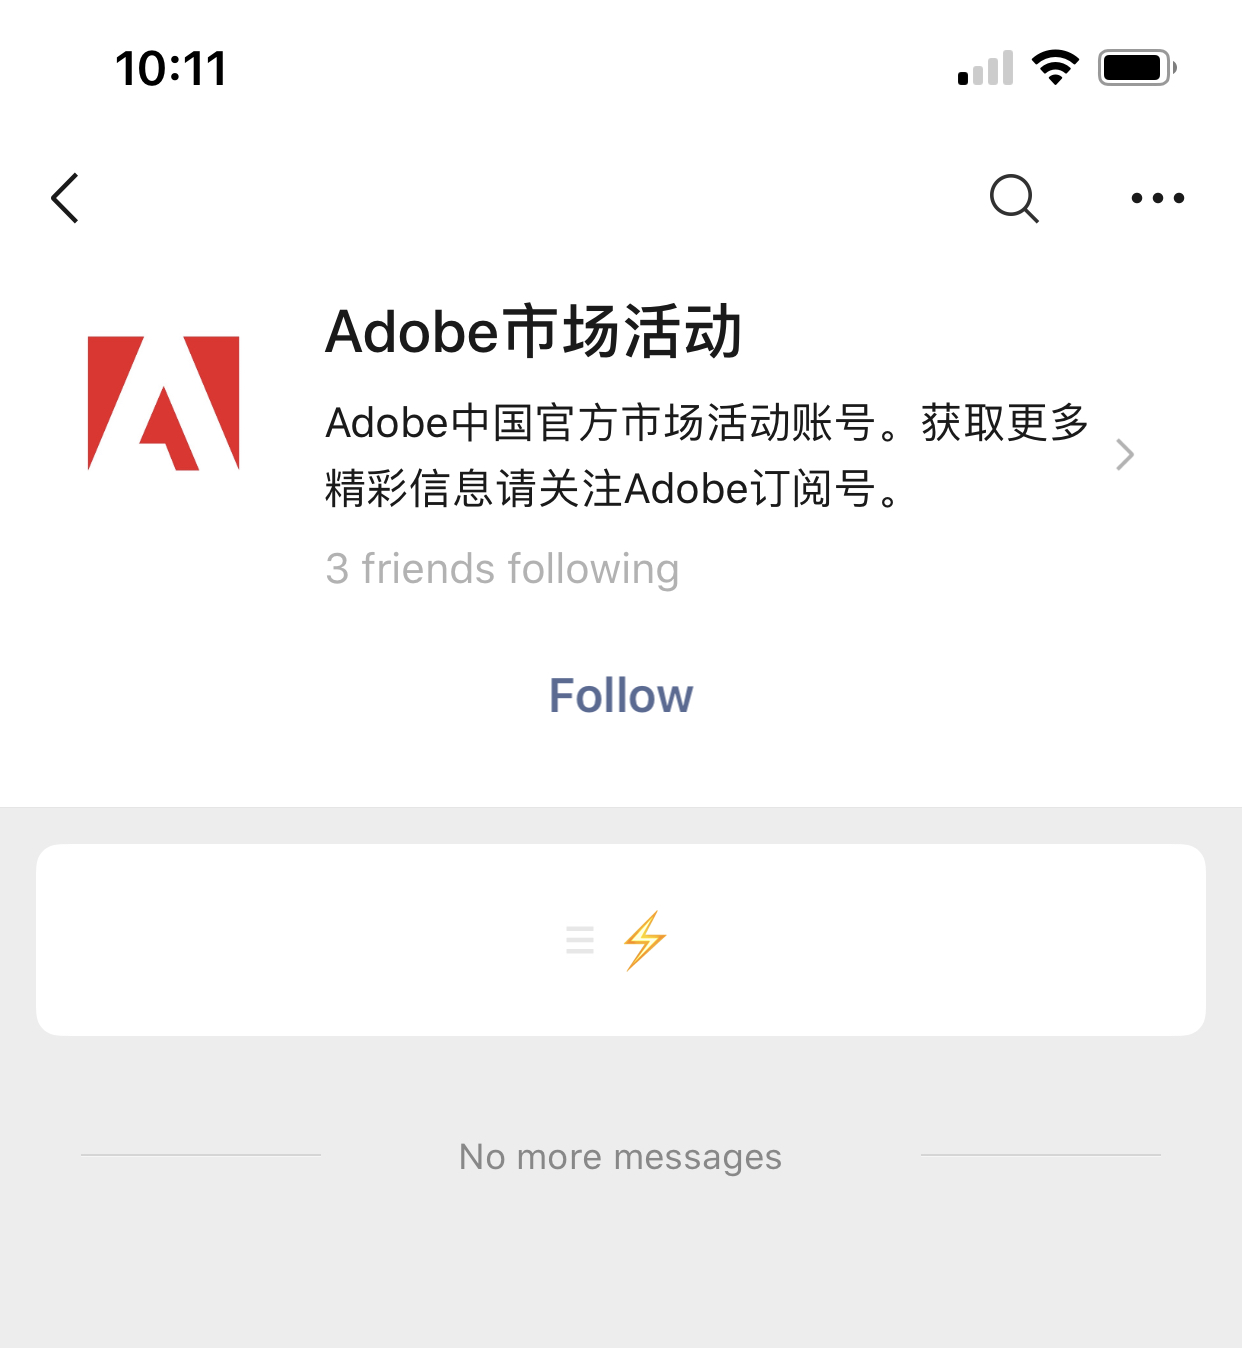 WeChat_AdobeOfficialAccount_Follow